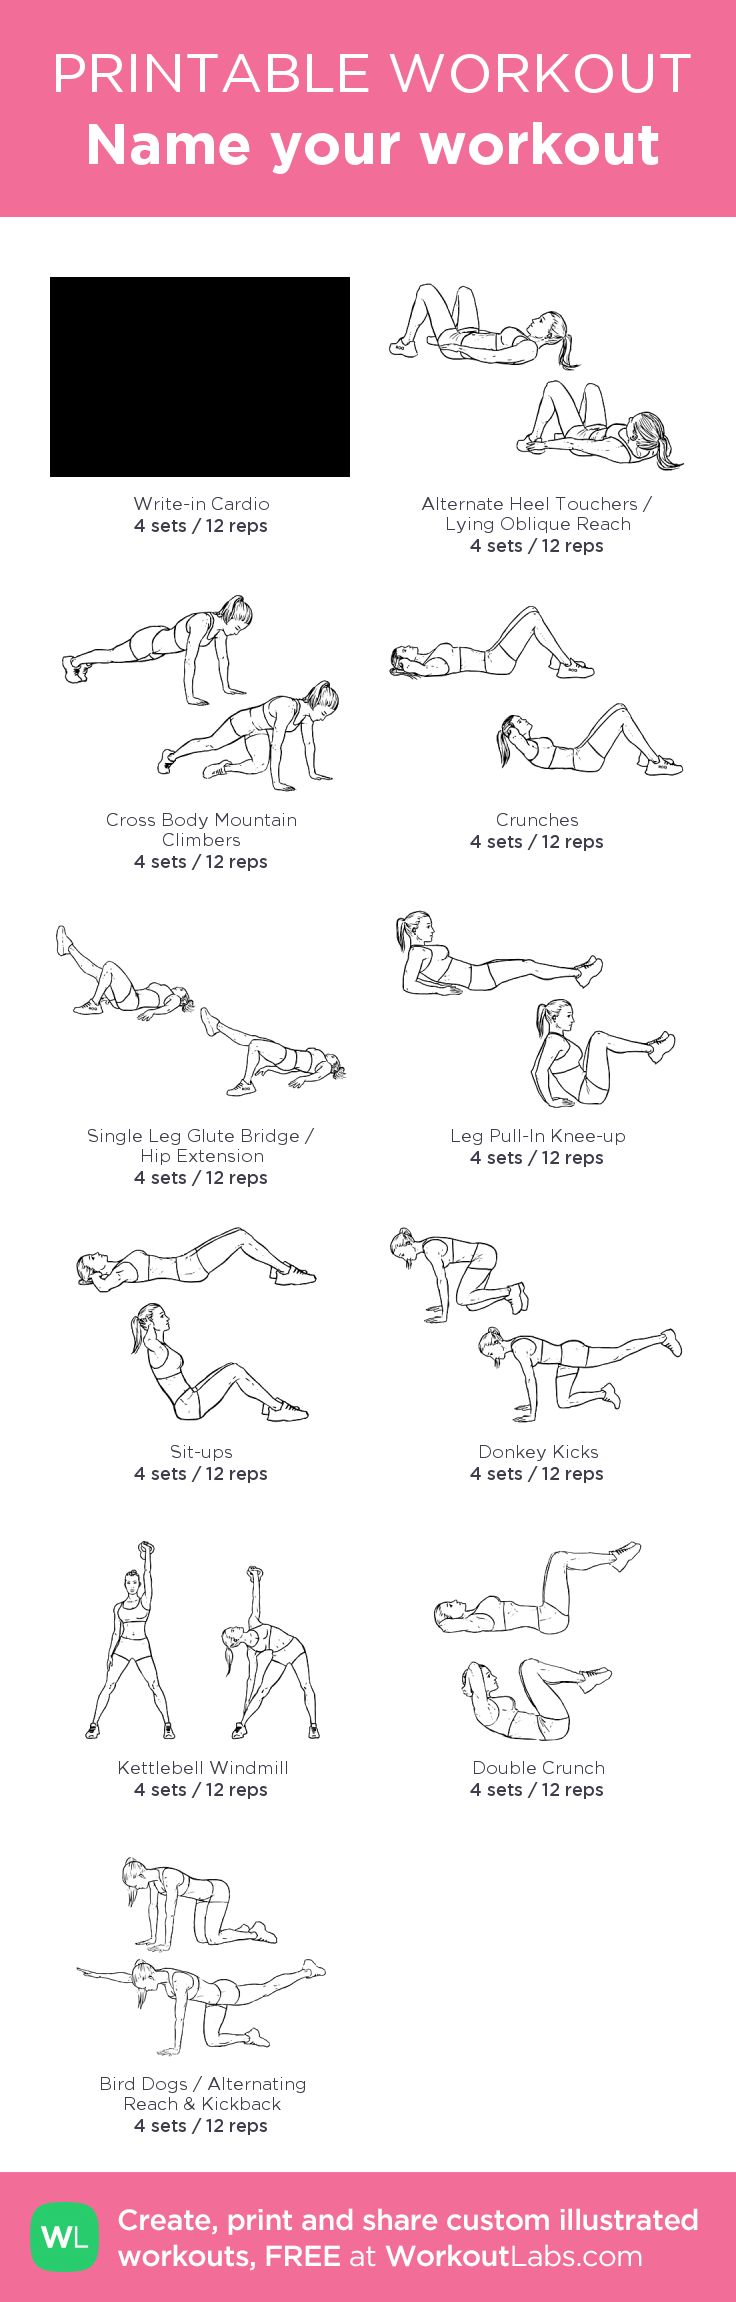 Name your workout –my custom workout created at WorkoutLabs.com • Click through to download as printable PDF! #customworkout